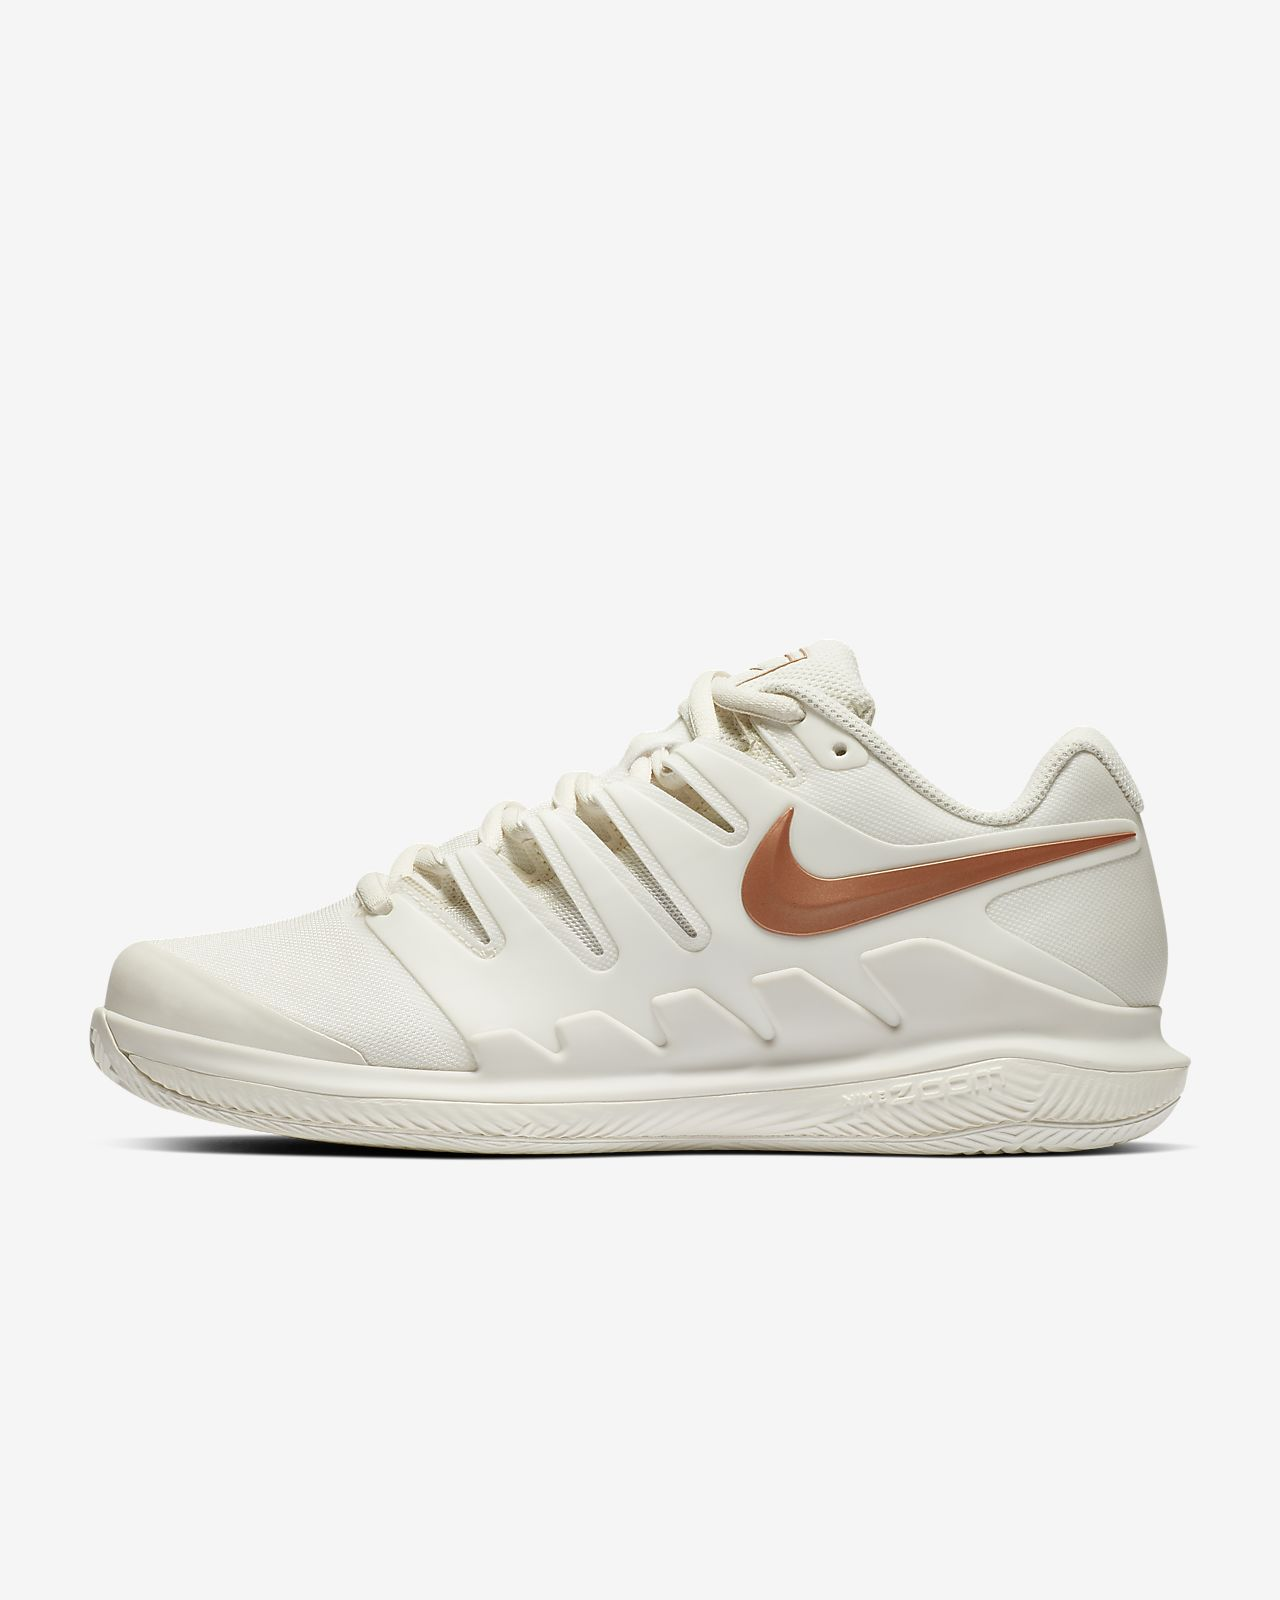 huge discount 02838 558be ... Chaussure de tennis Nike Air Zoom Vapor X Clay pour Femme